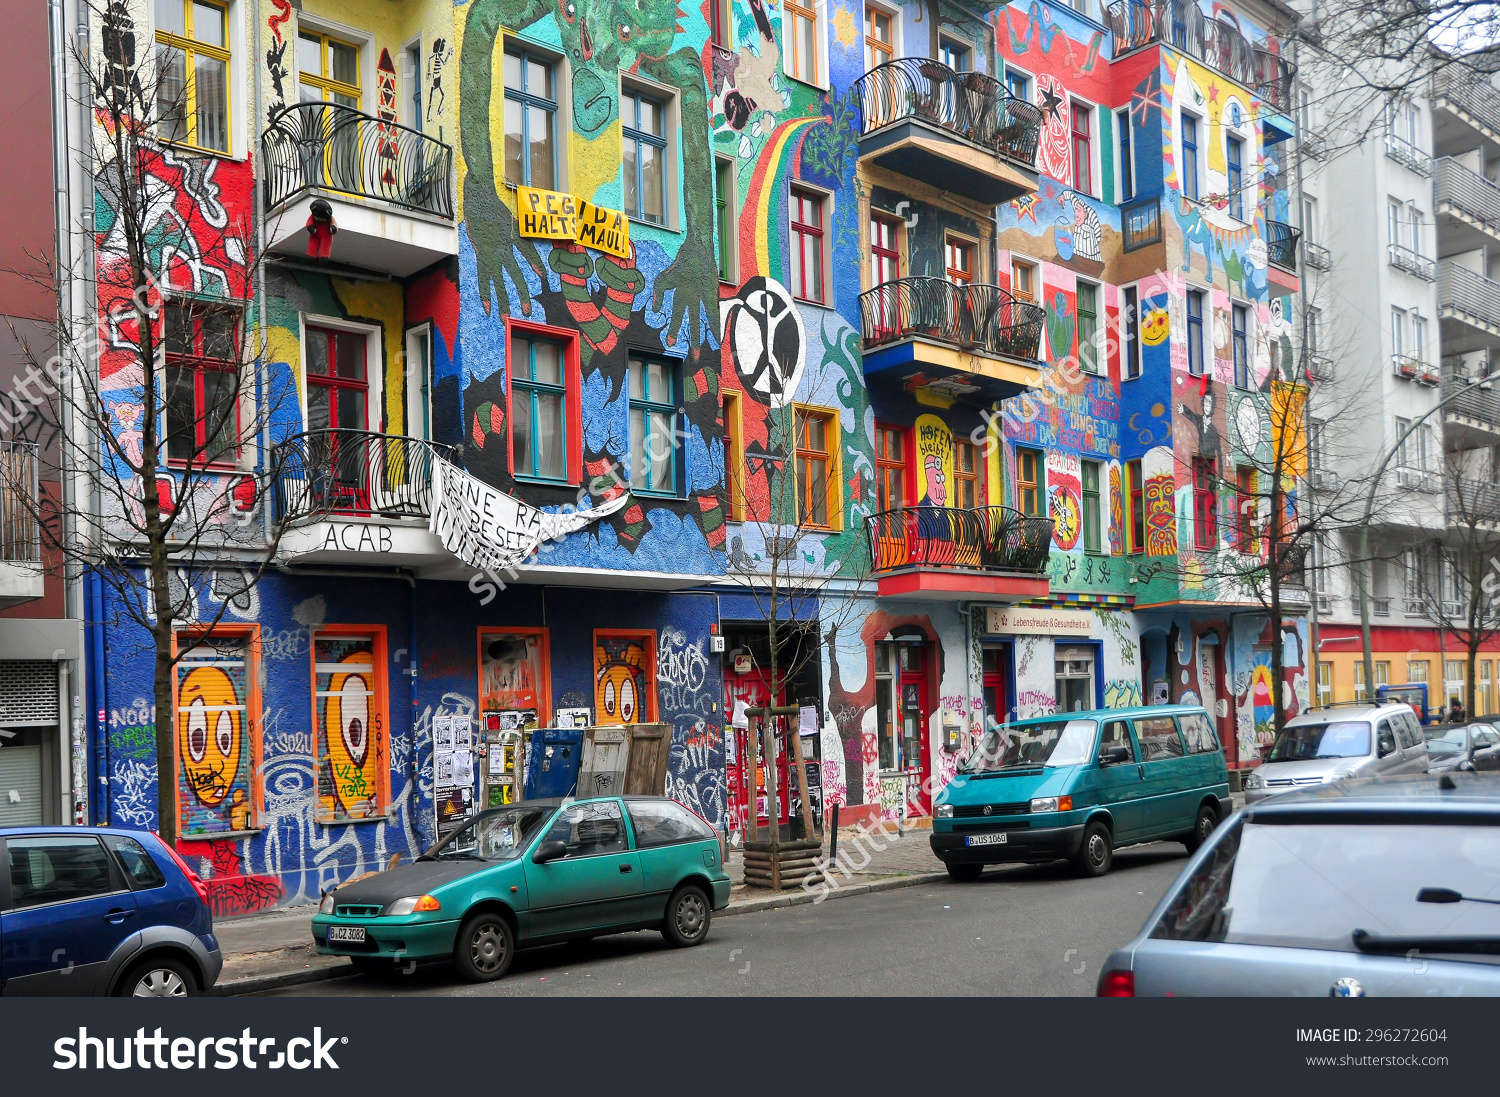 Berlin March 6 Graffiti House Easten Stock Photo 296272604.